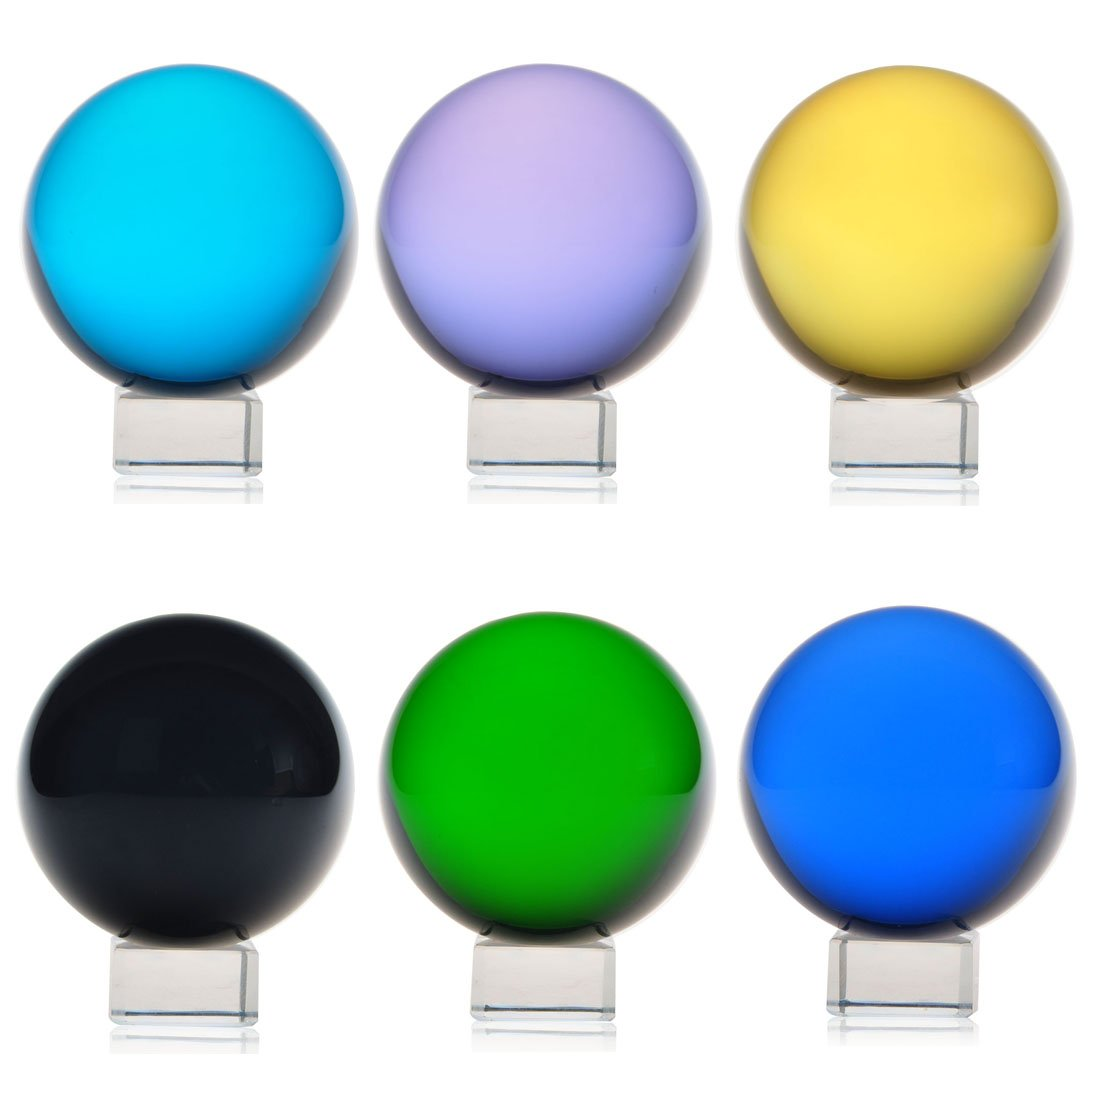 H&D Crystal Meditation Ball Globe Set 6pcs with Free Stand 60mm Multi-color